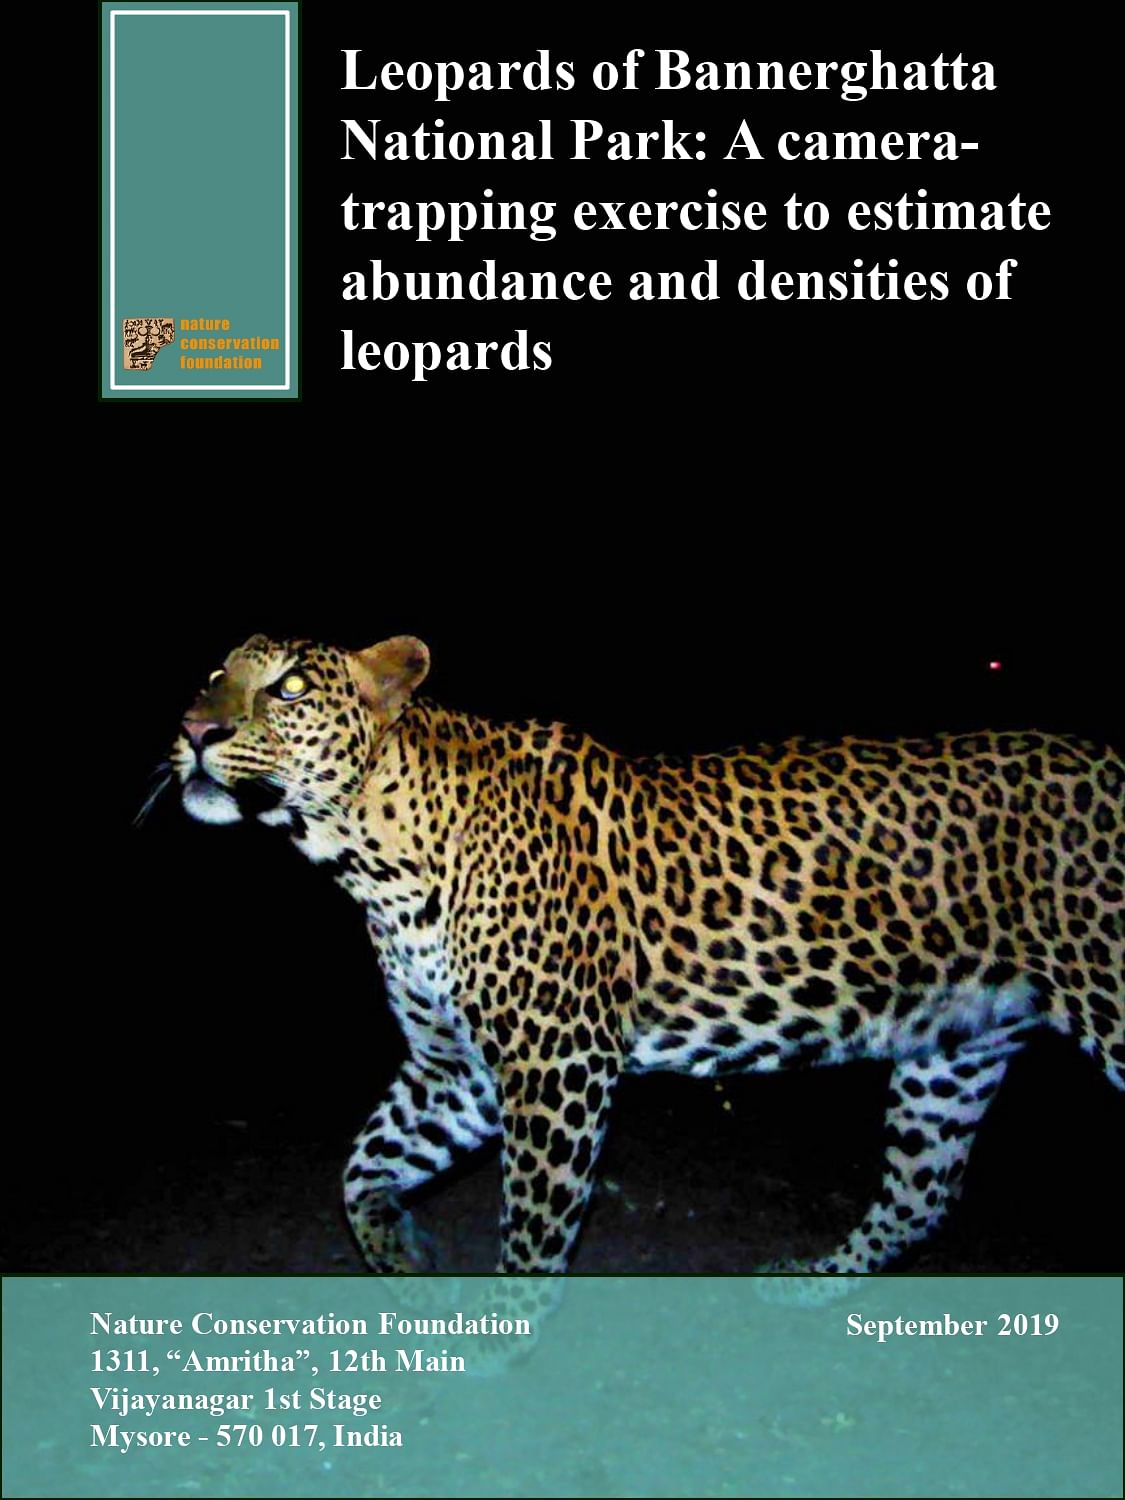 Leopards of Bannerghatta National Park: A camera-trapping exercise to estimate abundance and densities of leopards